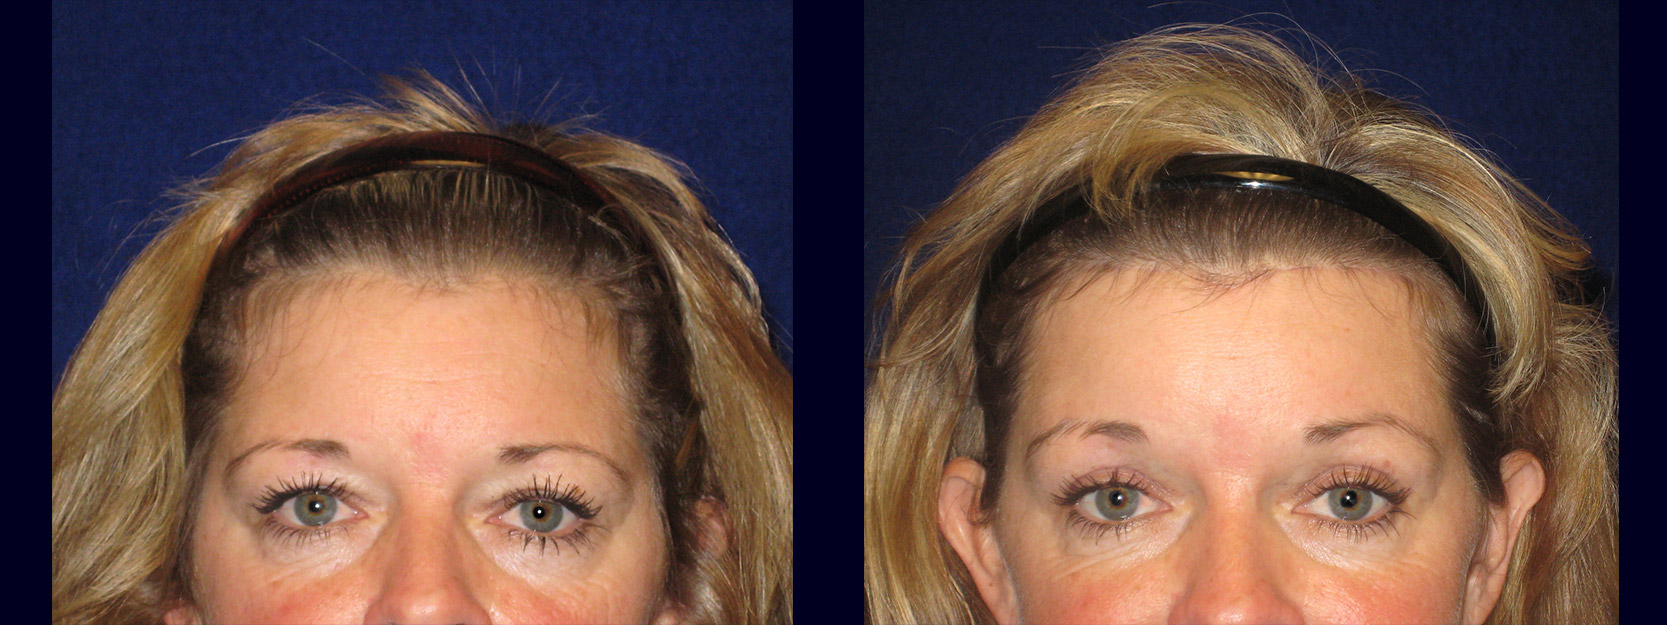 Fontal View - Browlift with Upper Eyelid Surgery